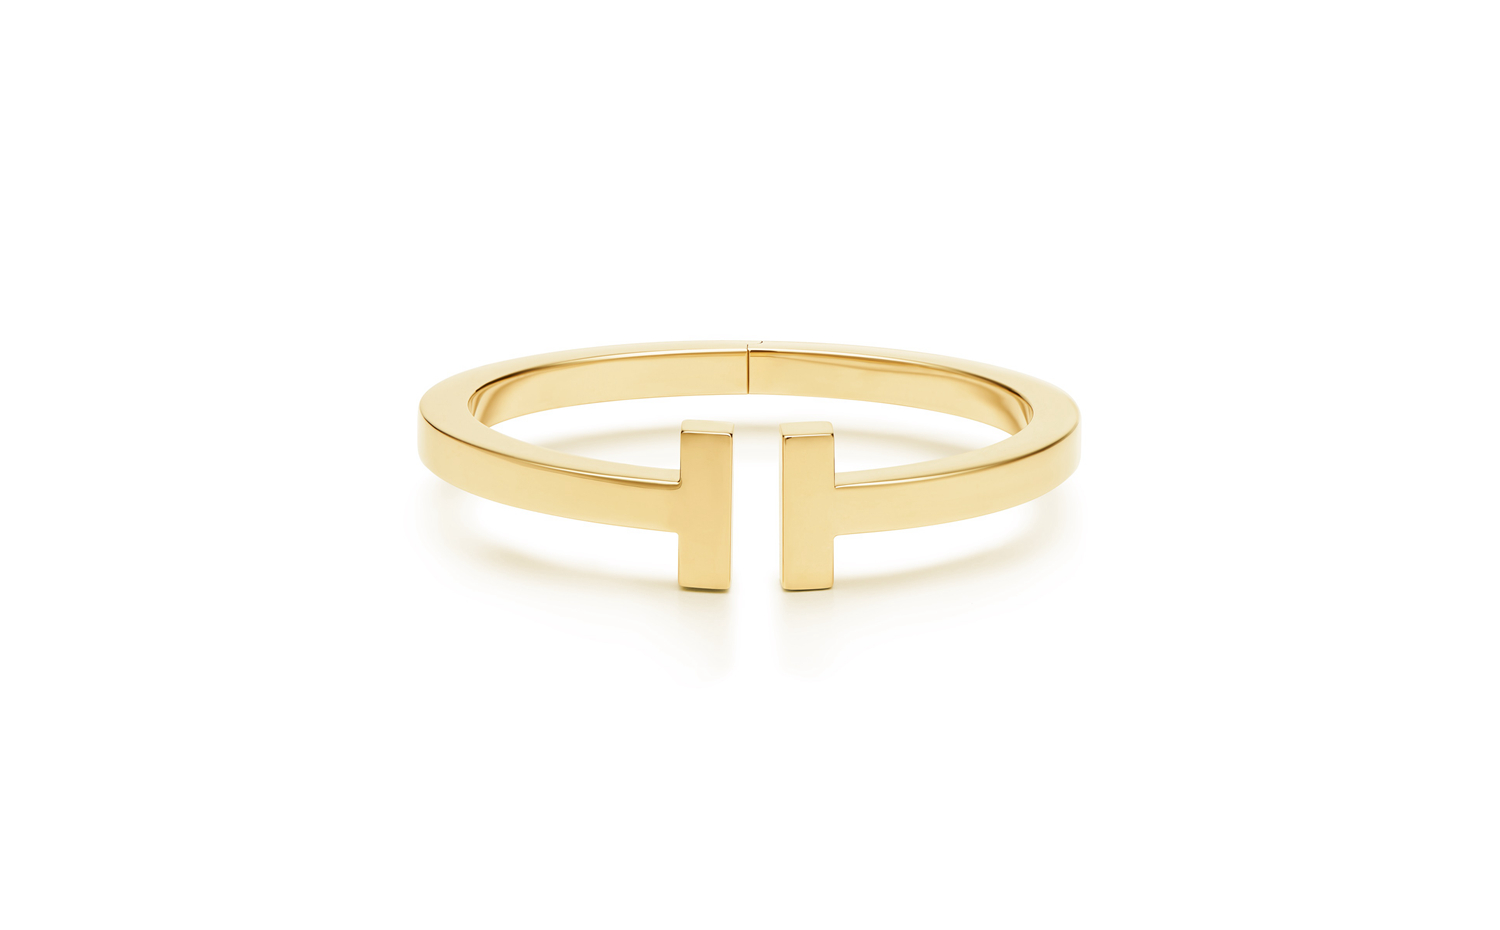 Tiffany T Square Bracelet in Gold